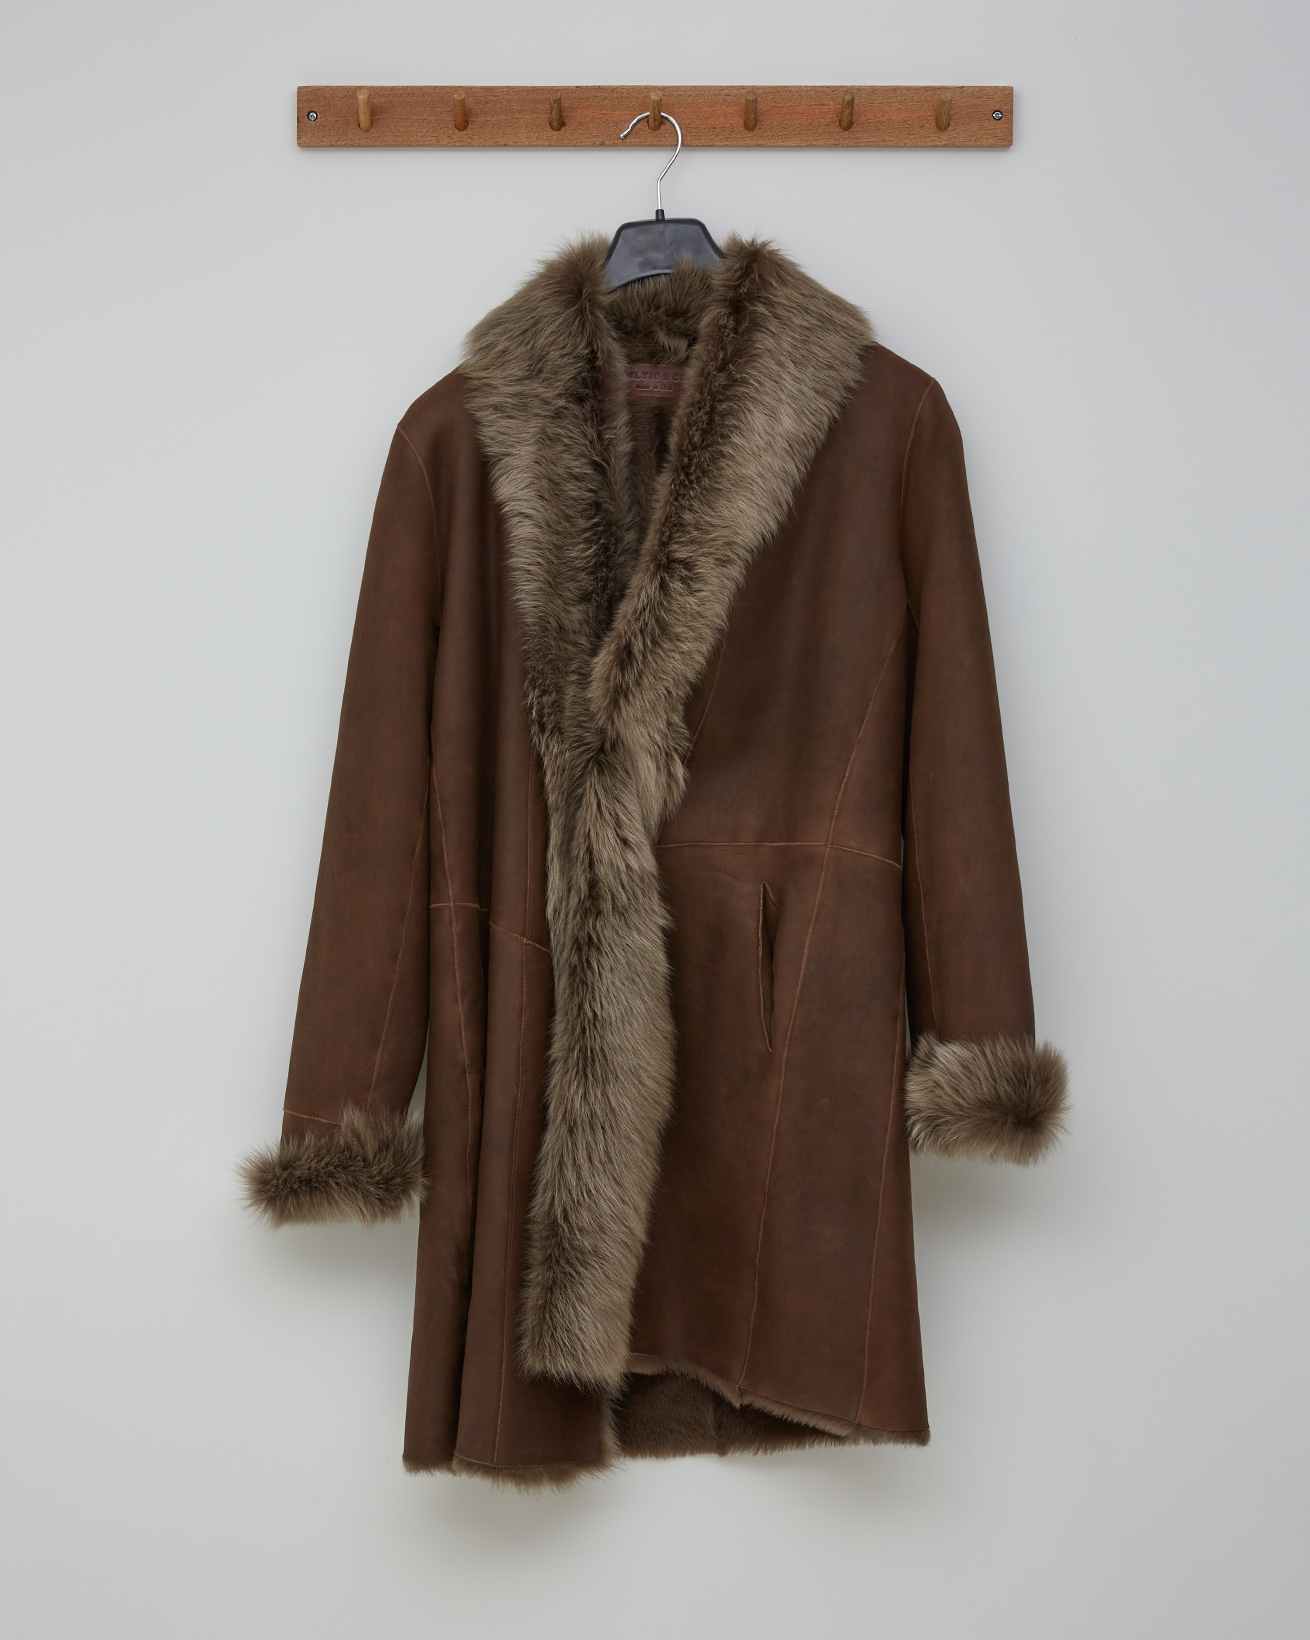 3/4 TOSCANA TRIM COAT - TANNERS BROWN NAPPA - SIZE 10 - 2702